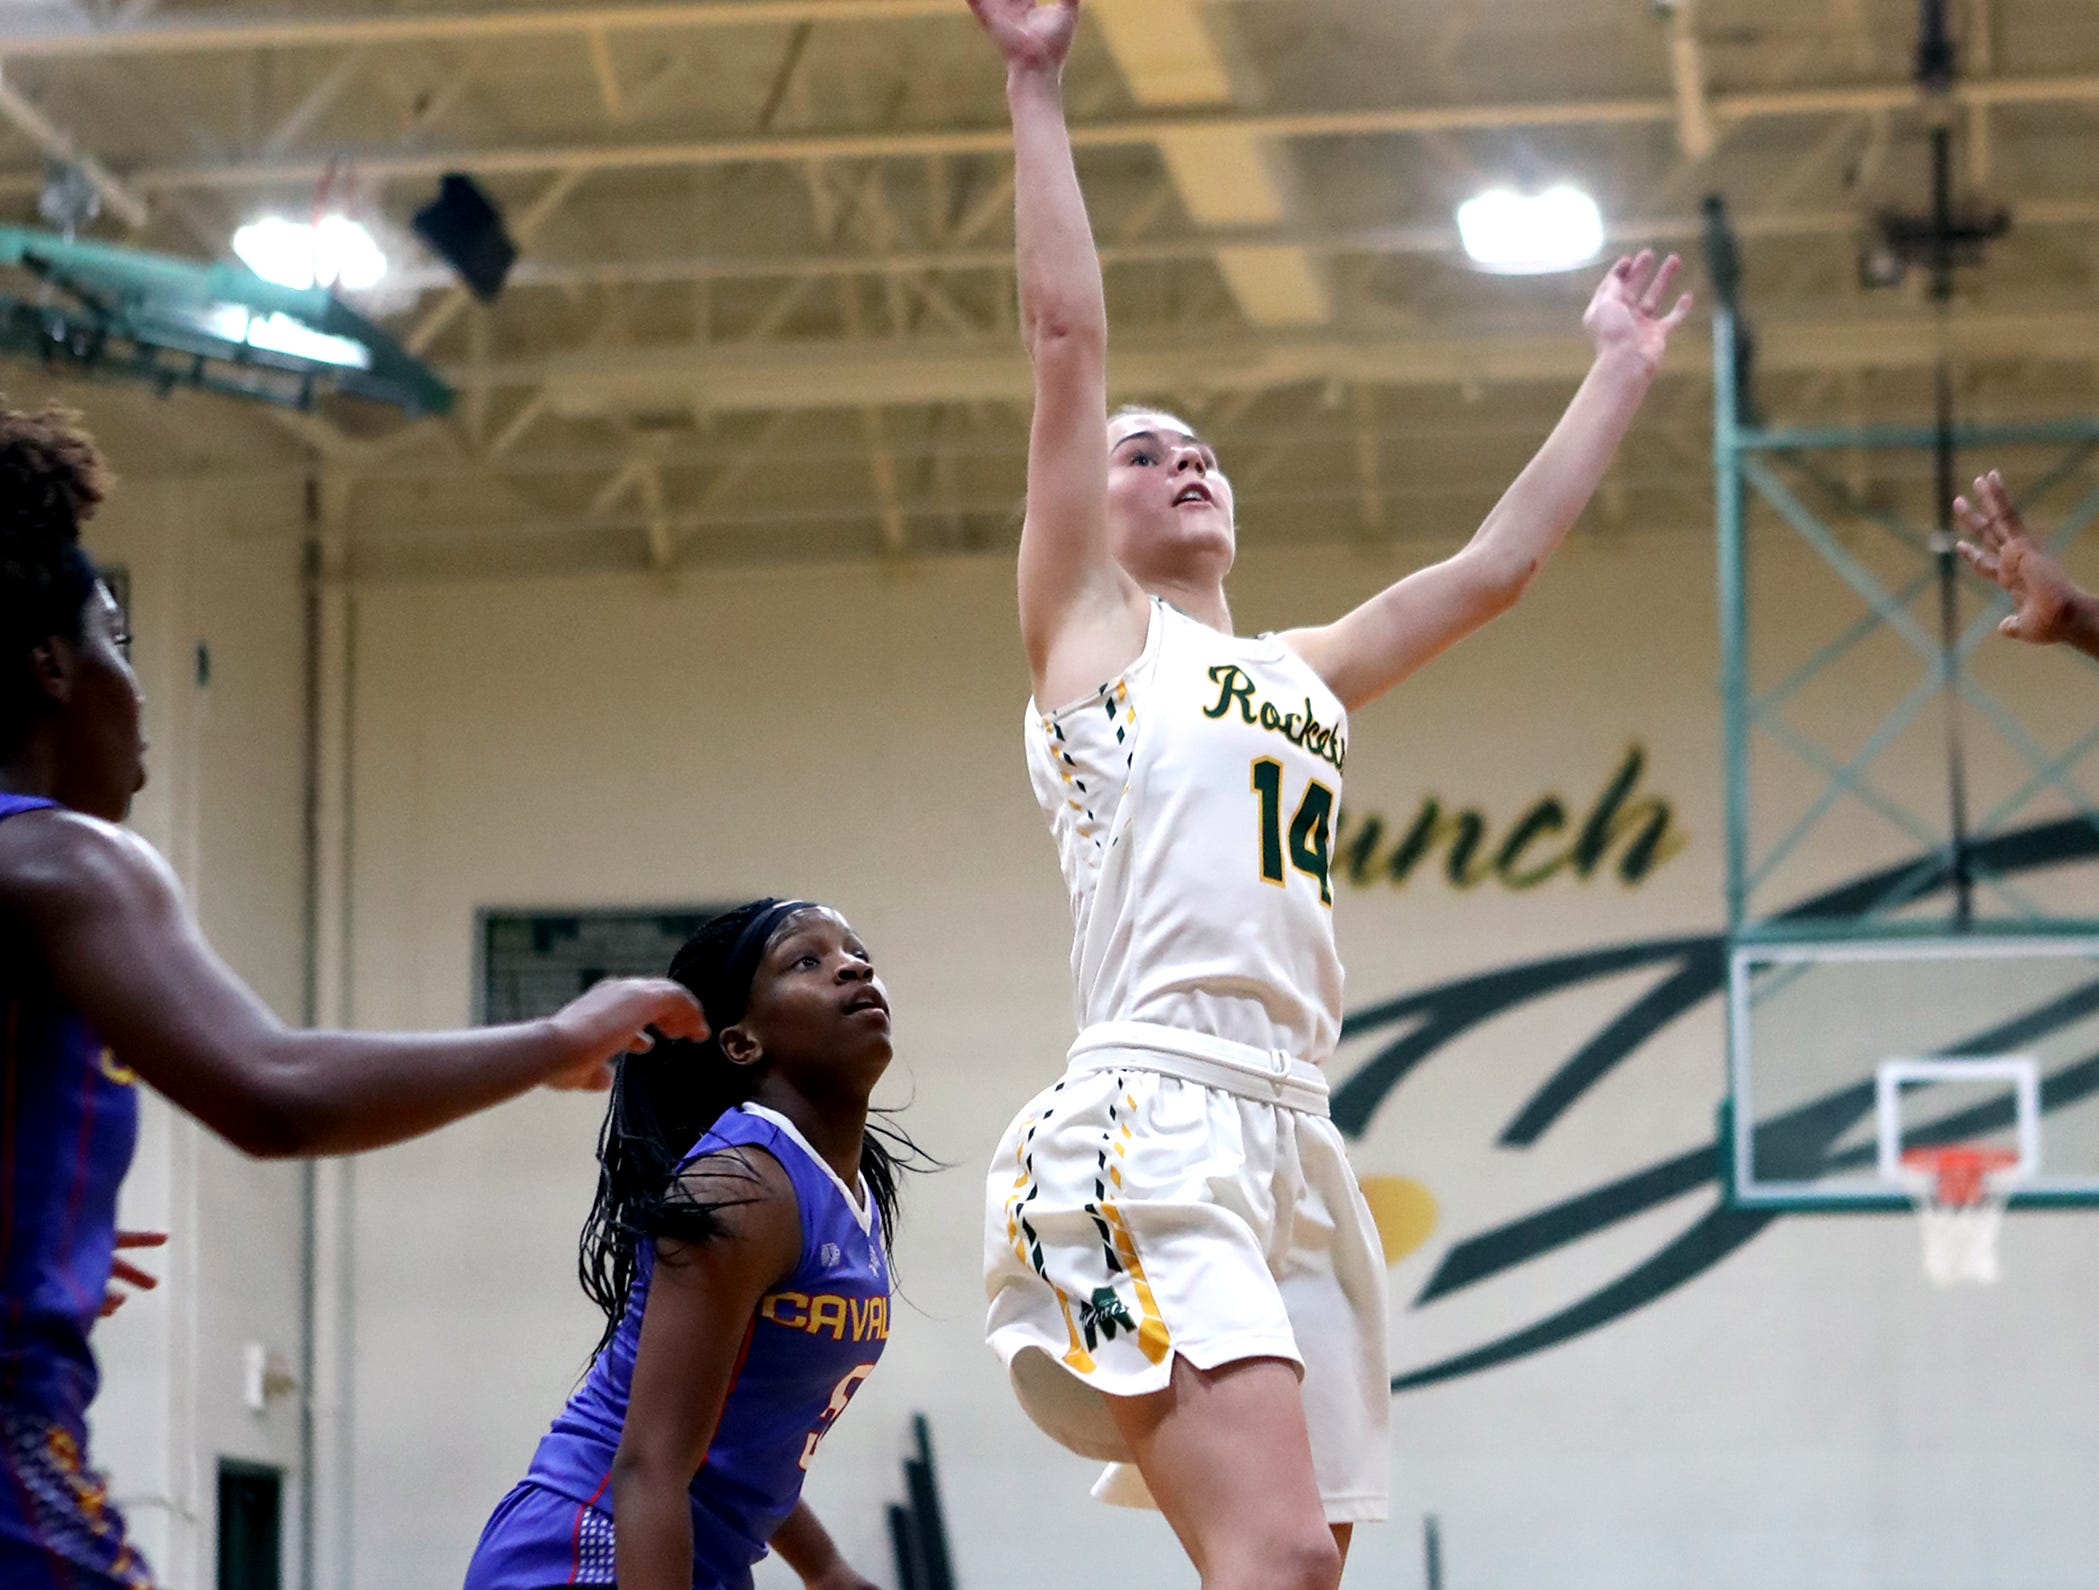 McNicholas guard Emily Byrne scores on a lay up. McNicholas upset Purcell 51-50 Jan. 9 in Greater Catholic League Coed action.